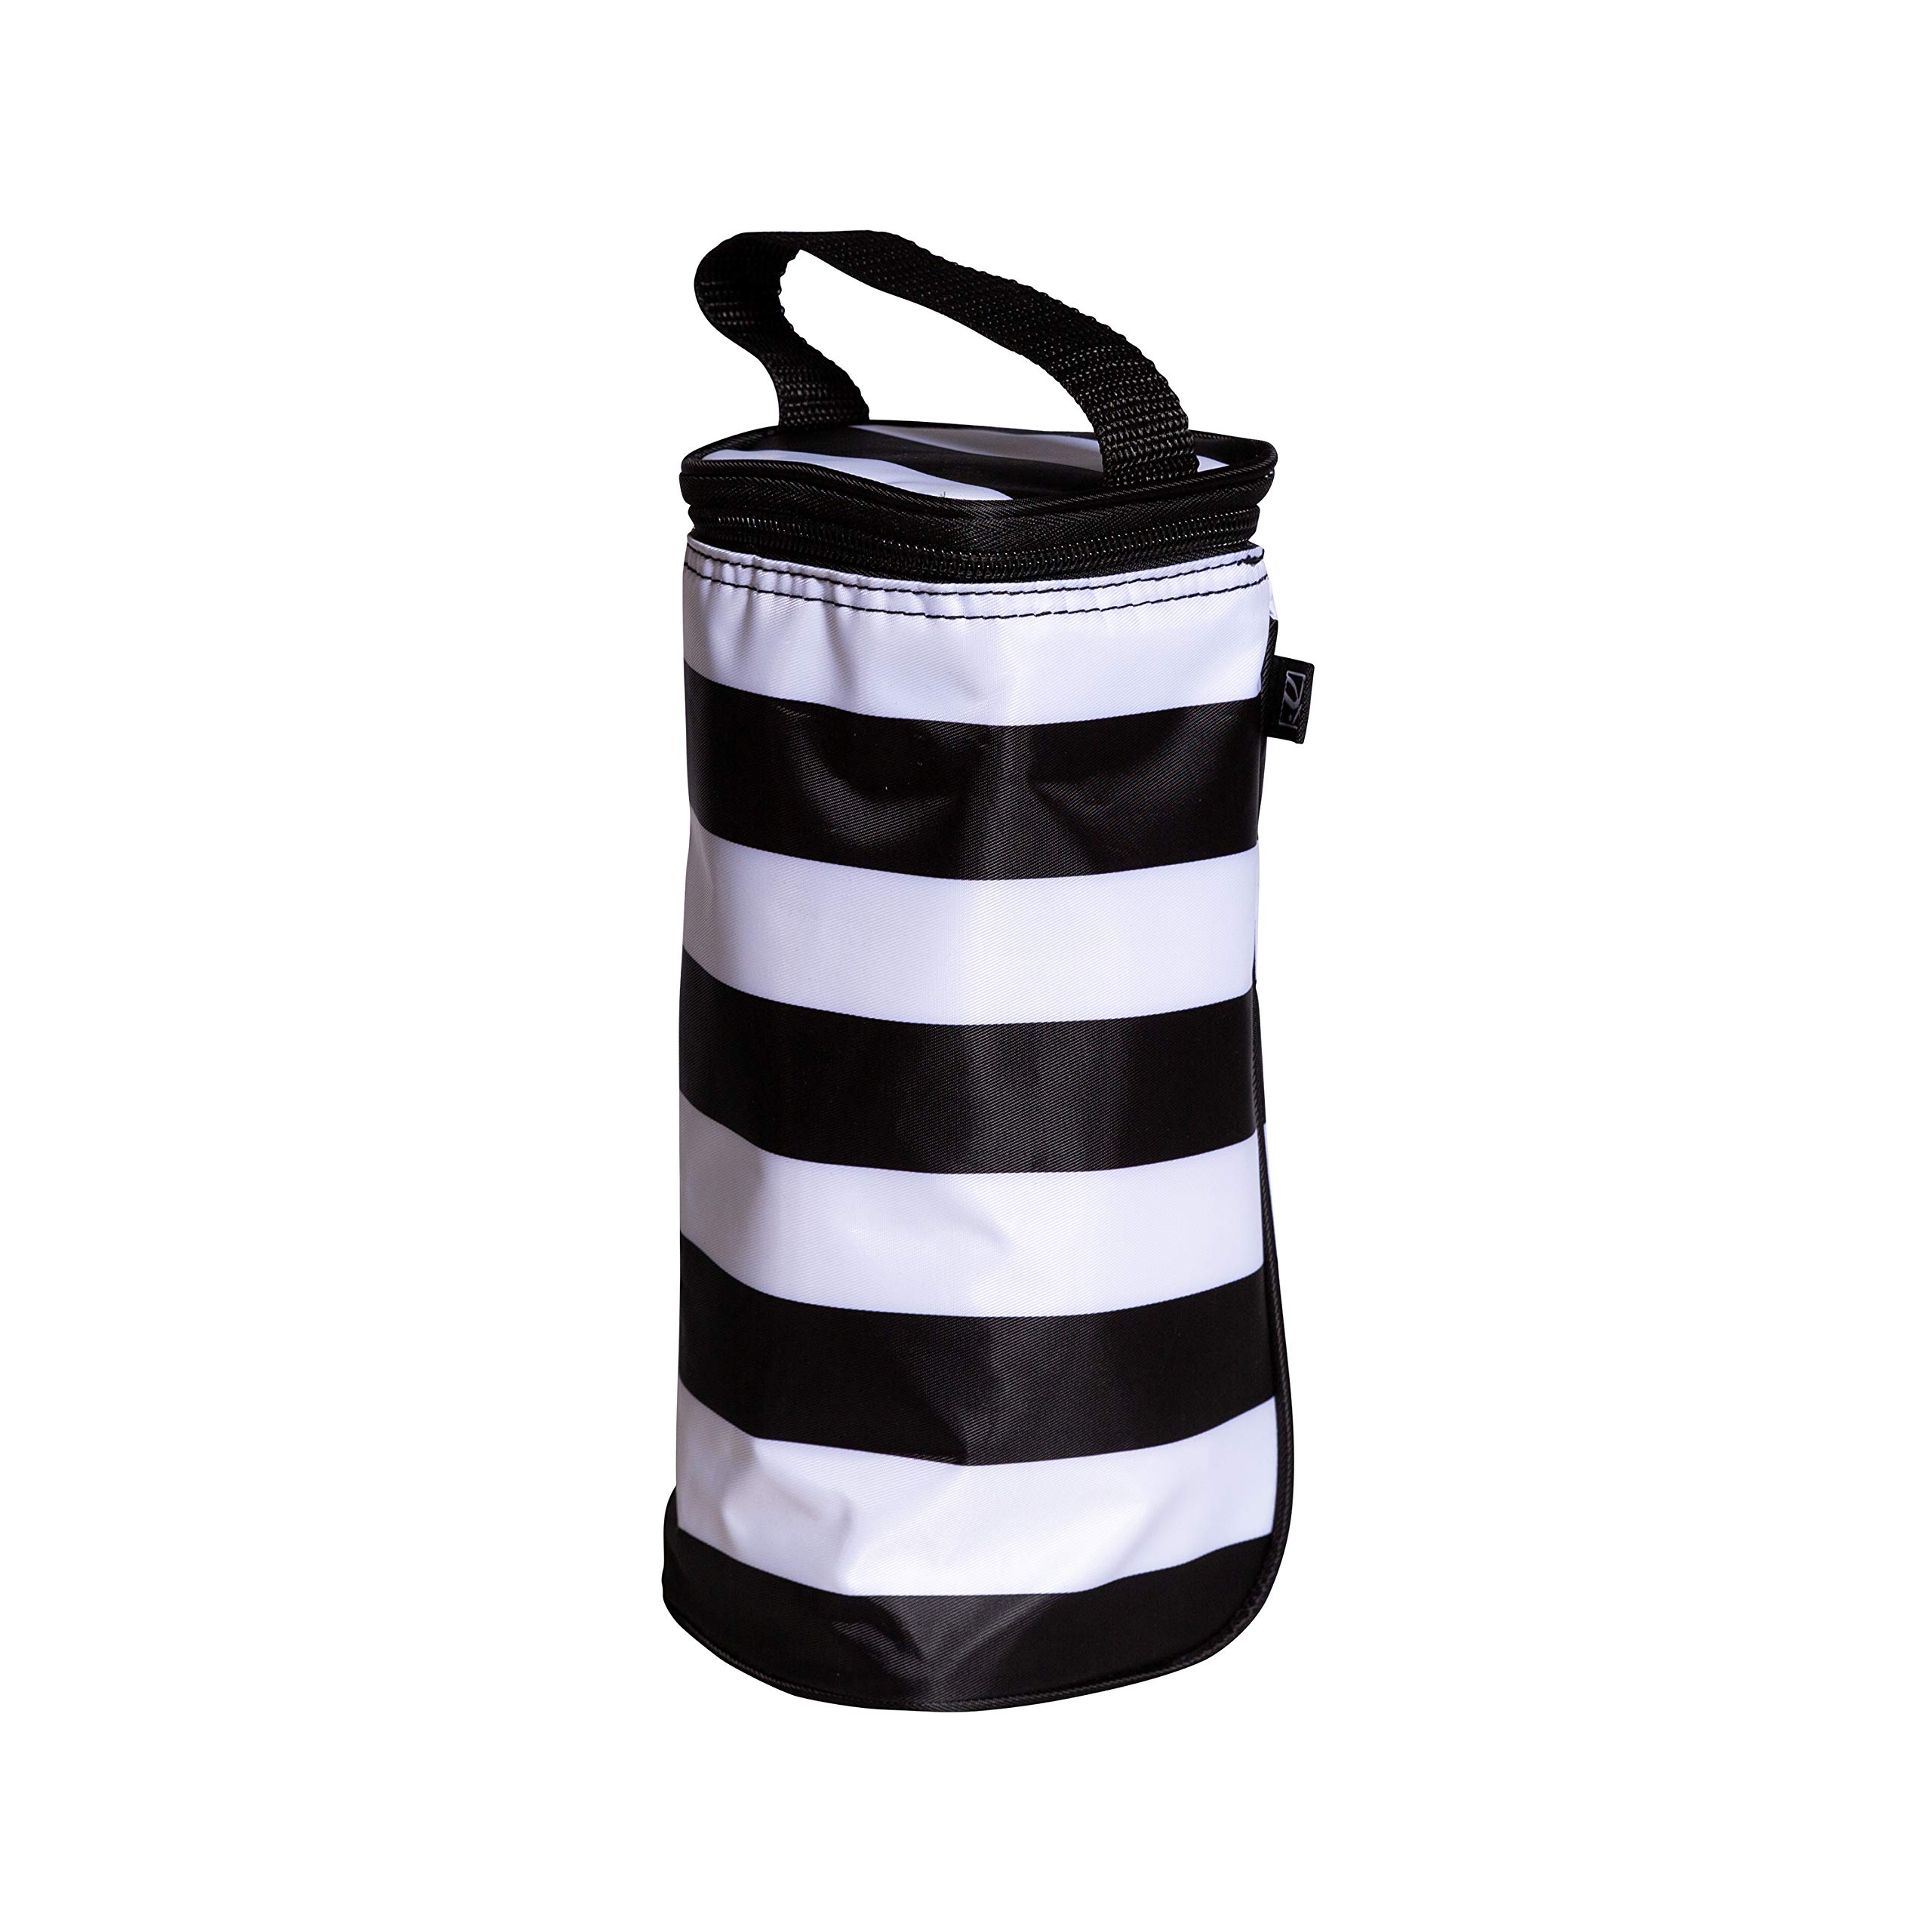 J.L. Childress Breastmilk Cooler & Baby Bottle Bag, Insulated & Leak Proof, Ice Pack Included, Single Bottle, Black/White Stripe by J.L. Childress